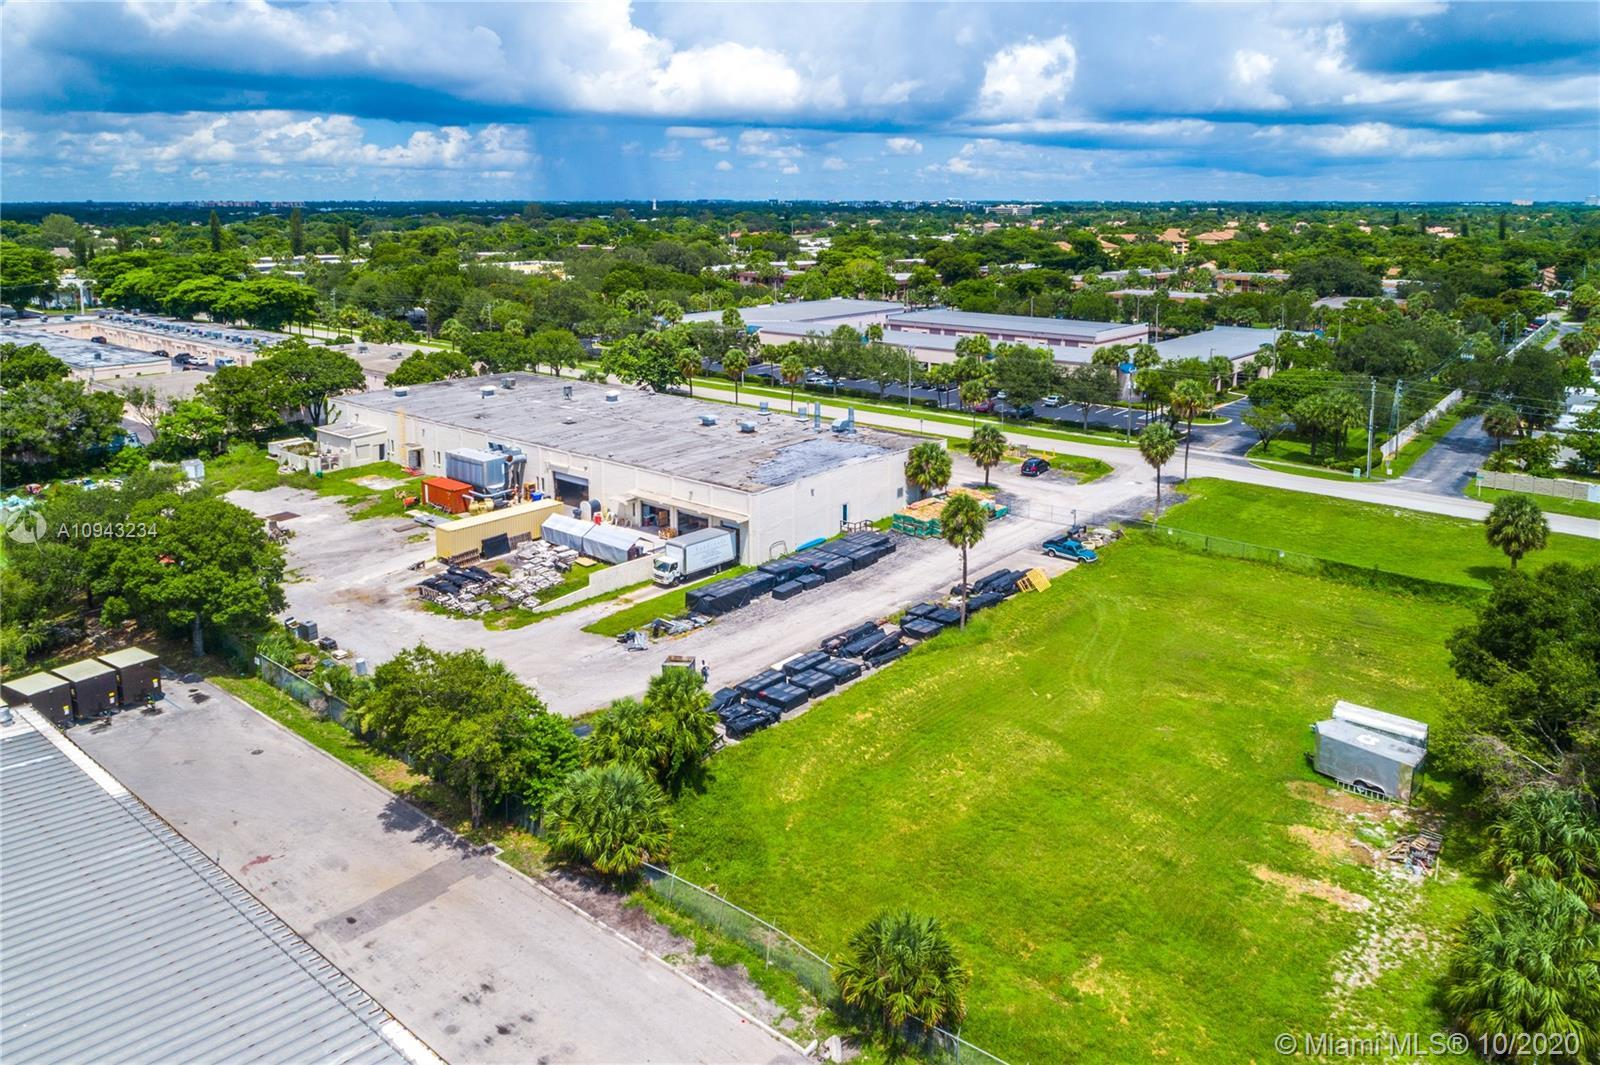 1400 NW 3 ST DEERFIELD BEACH; VACANT INDUSTRIAL LAND OPPORTUNITY ON A  35,381 SQFT LOT. POTENTIAL TO